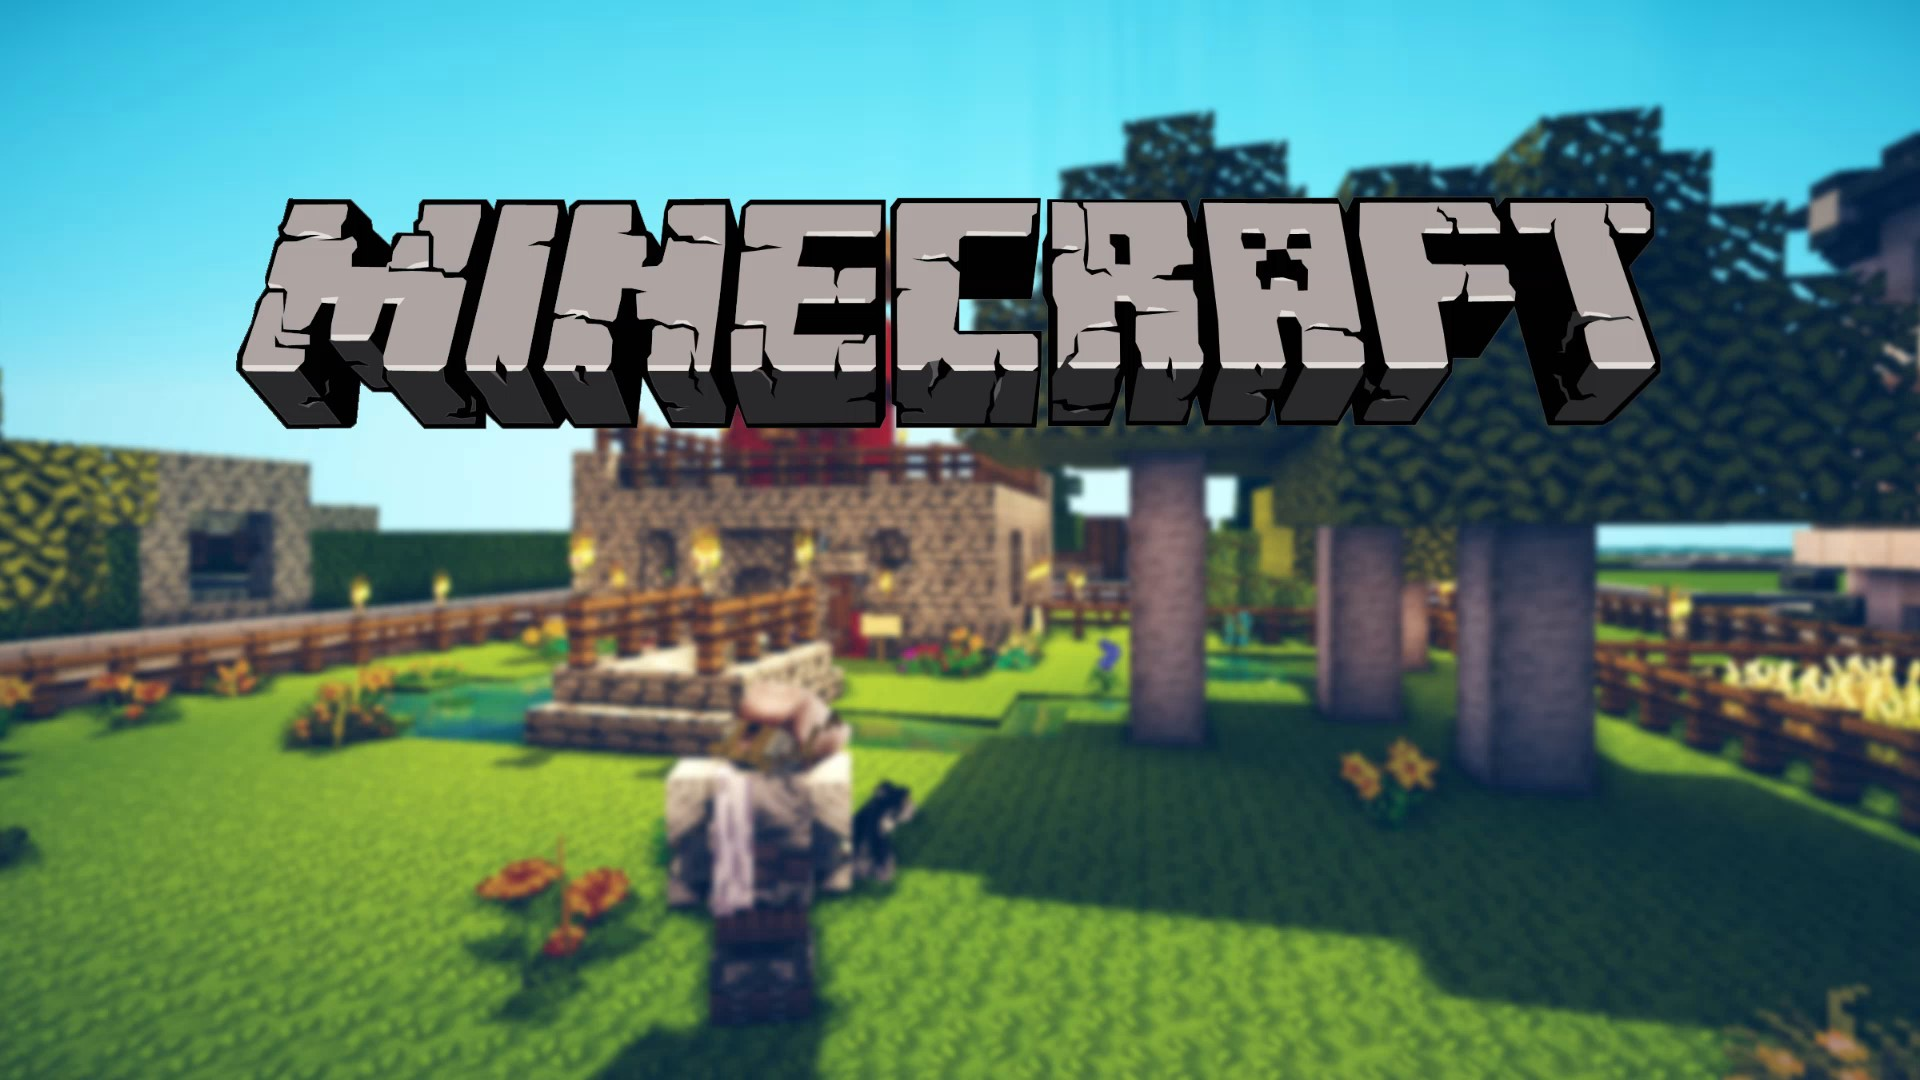 Descargar Minecraft PE Apk Gratis ACTUALIZABLE Para Android